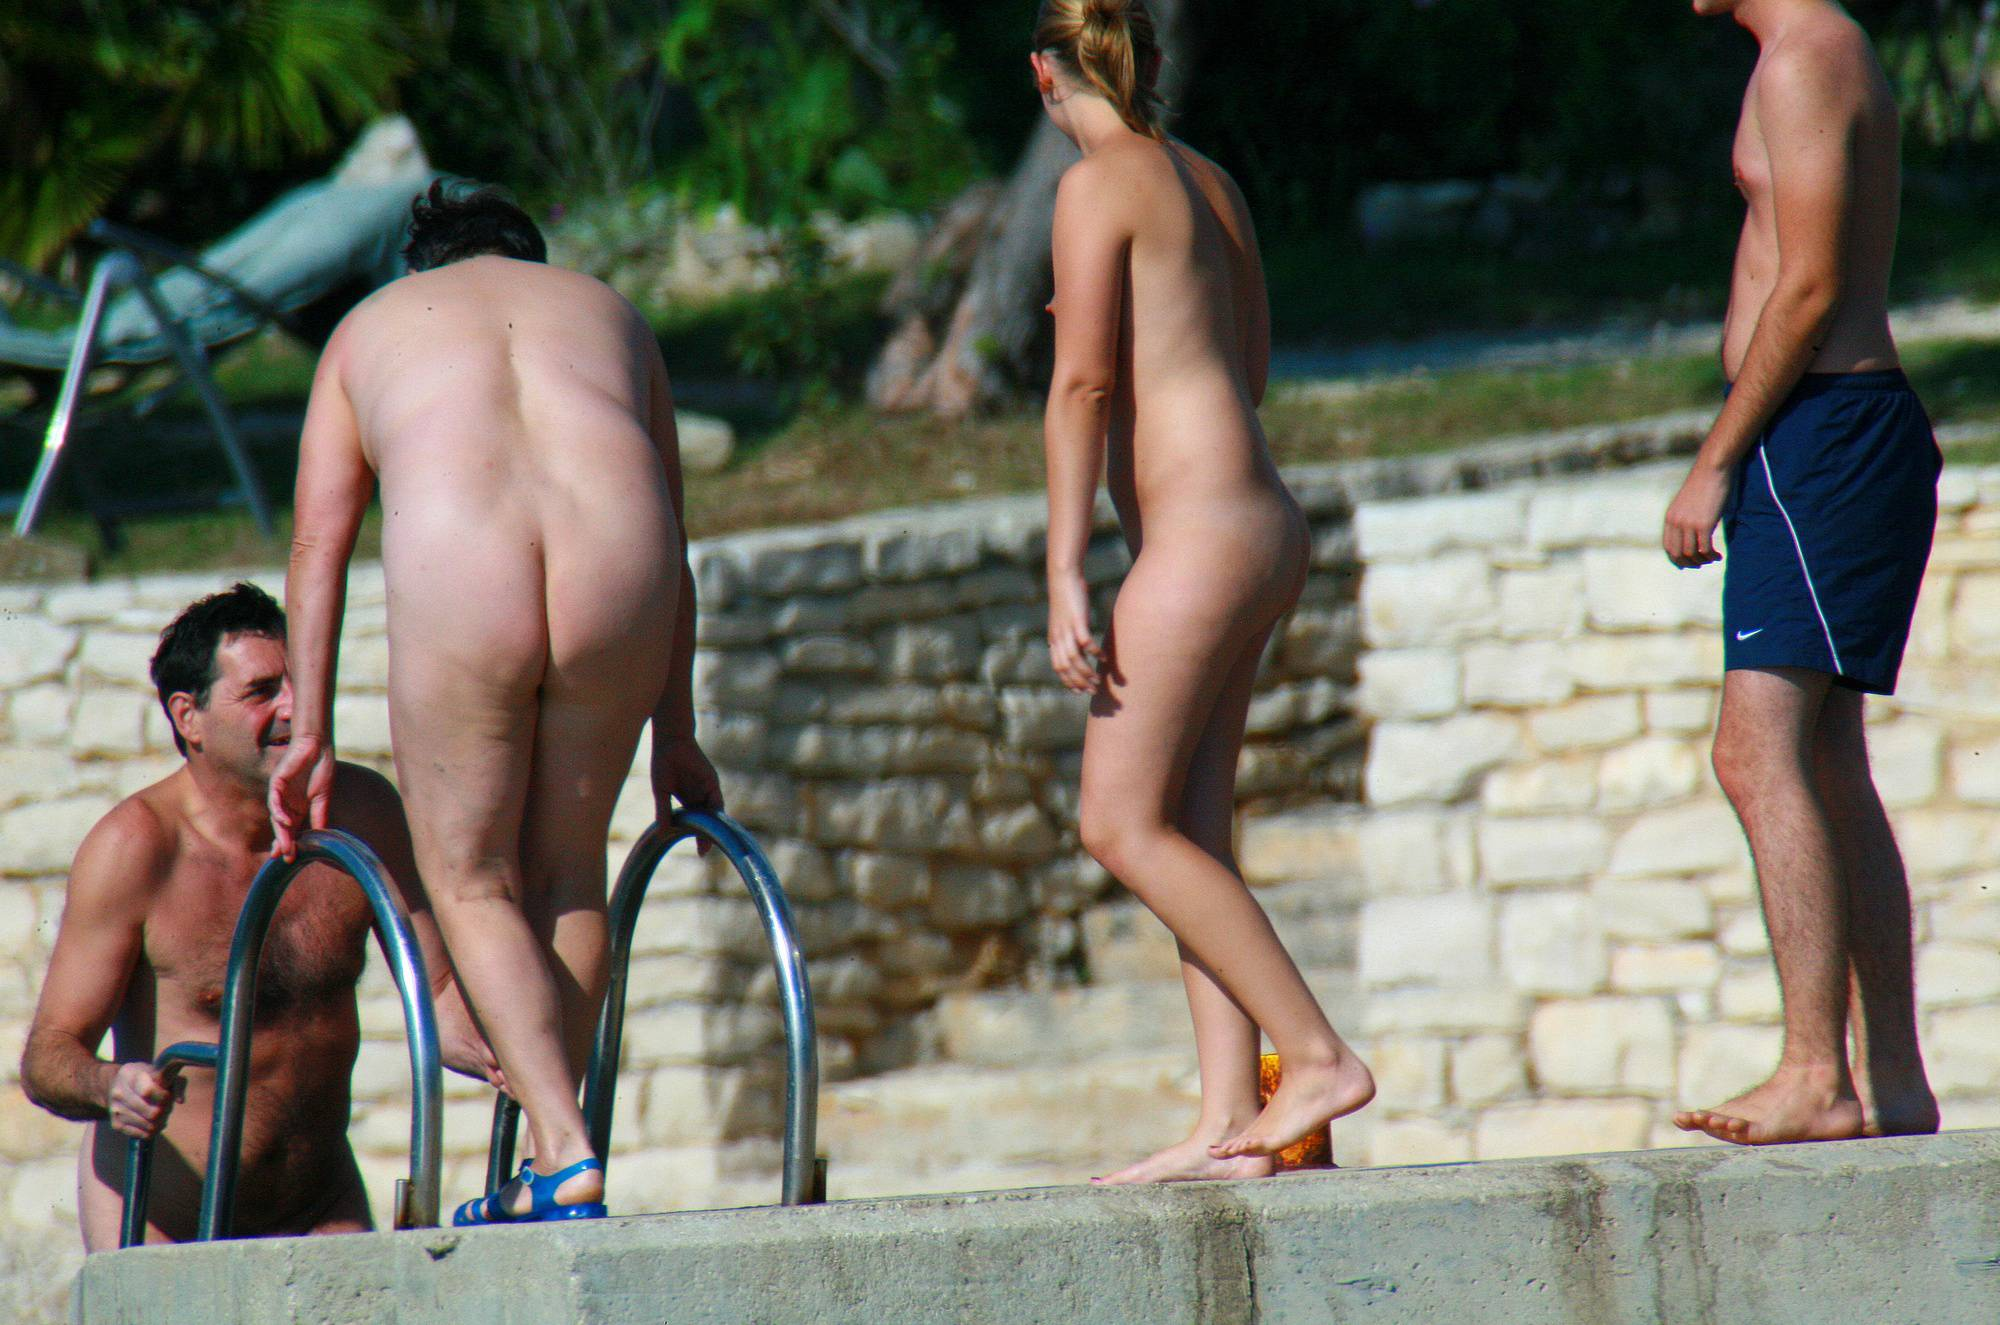 Nudist Pictures Ula FKK Couple's Park Tour - 2